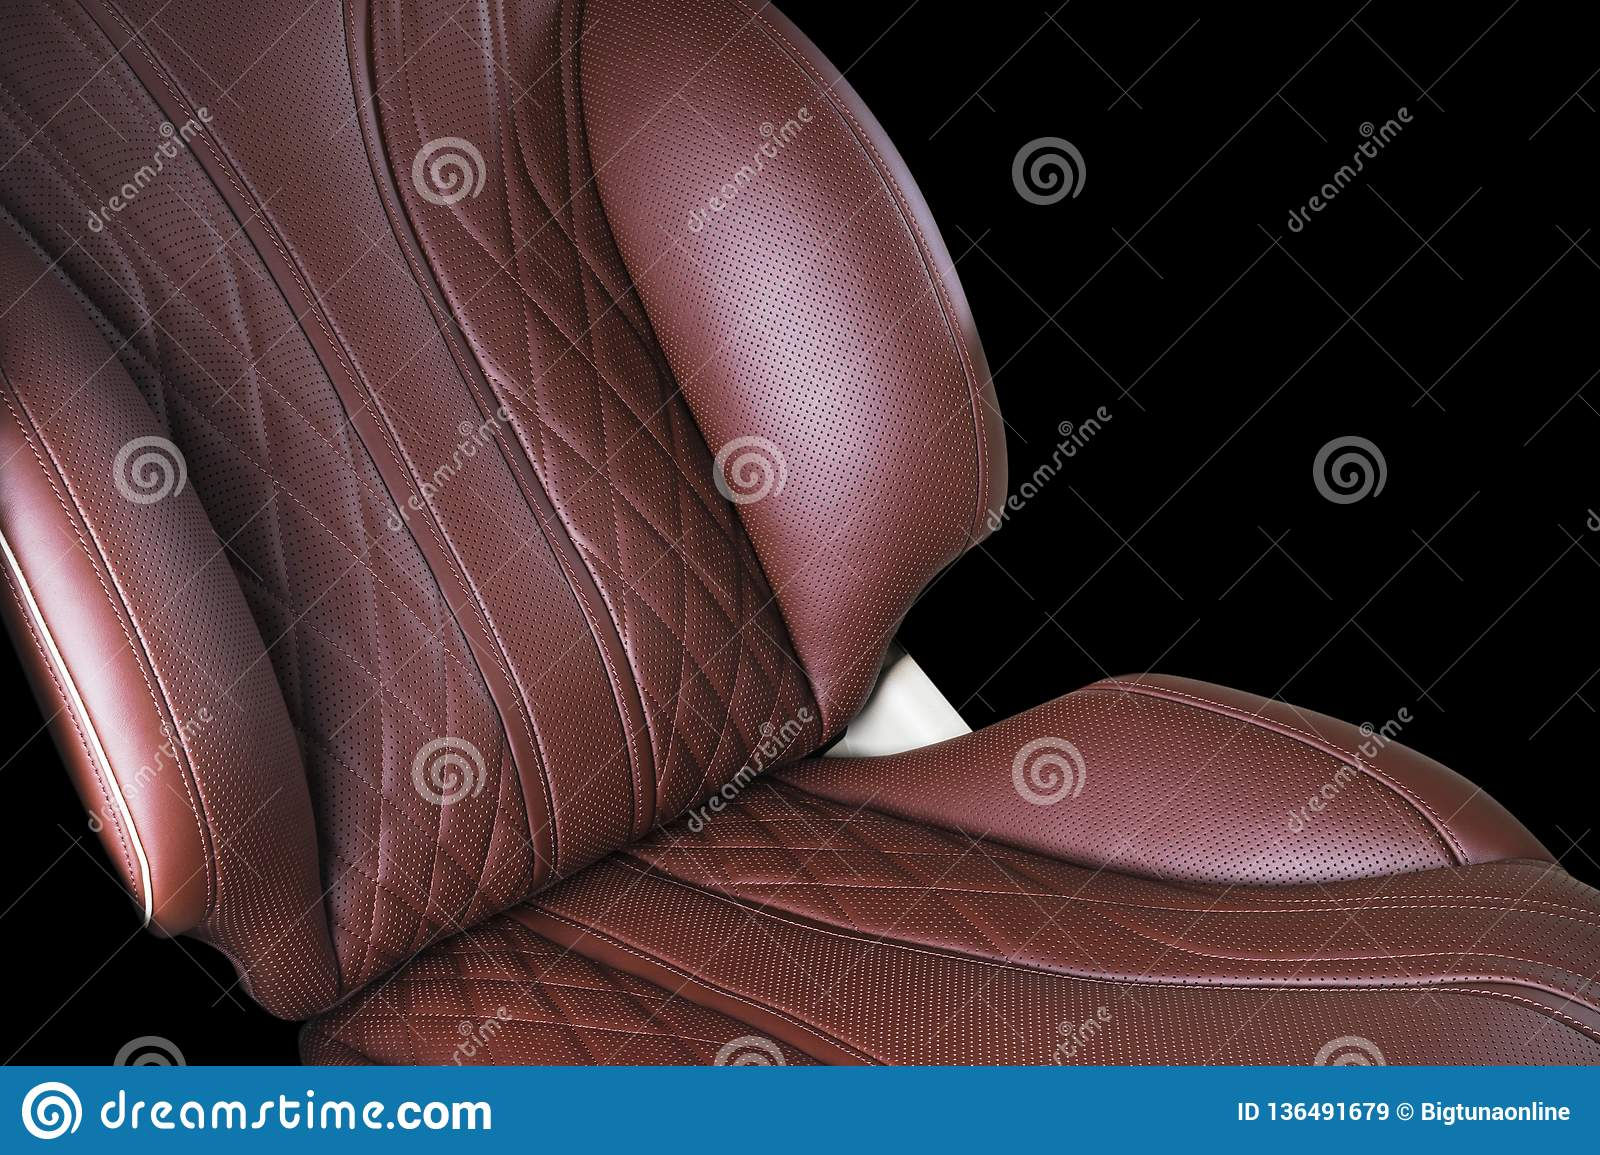 Brown Leather Interior Of The Luxury Modern Car Perforated Leather Comfortable Red Seats With Stitching Isolated On Black Backgro Stock Image Image Of Drive Design 136491679